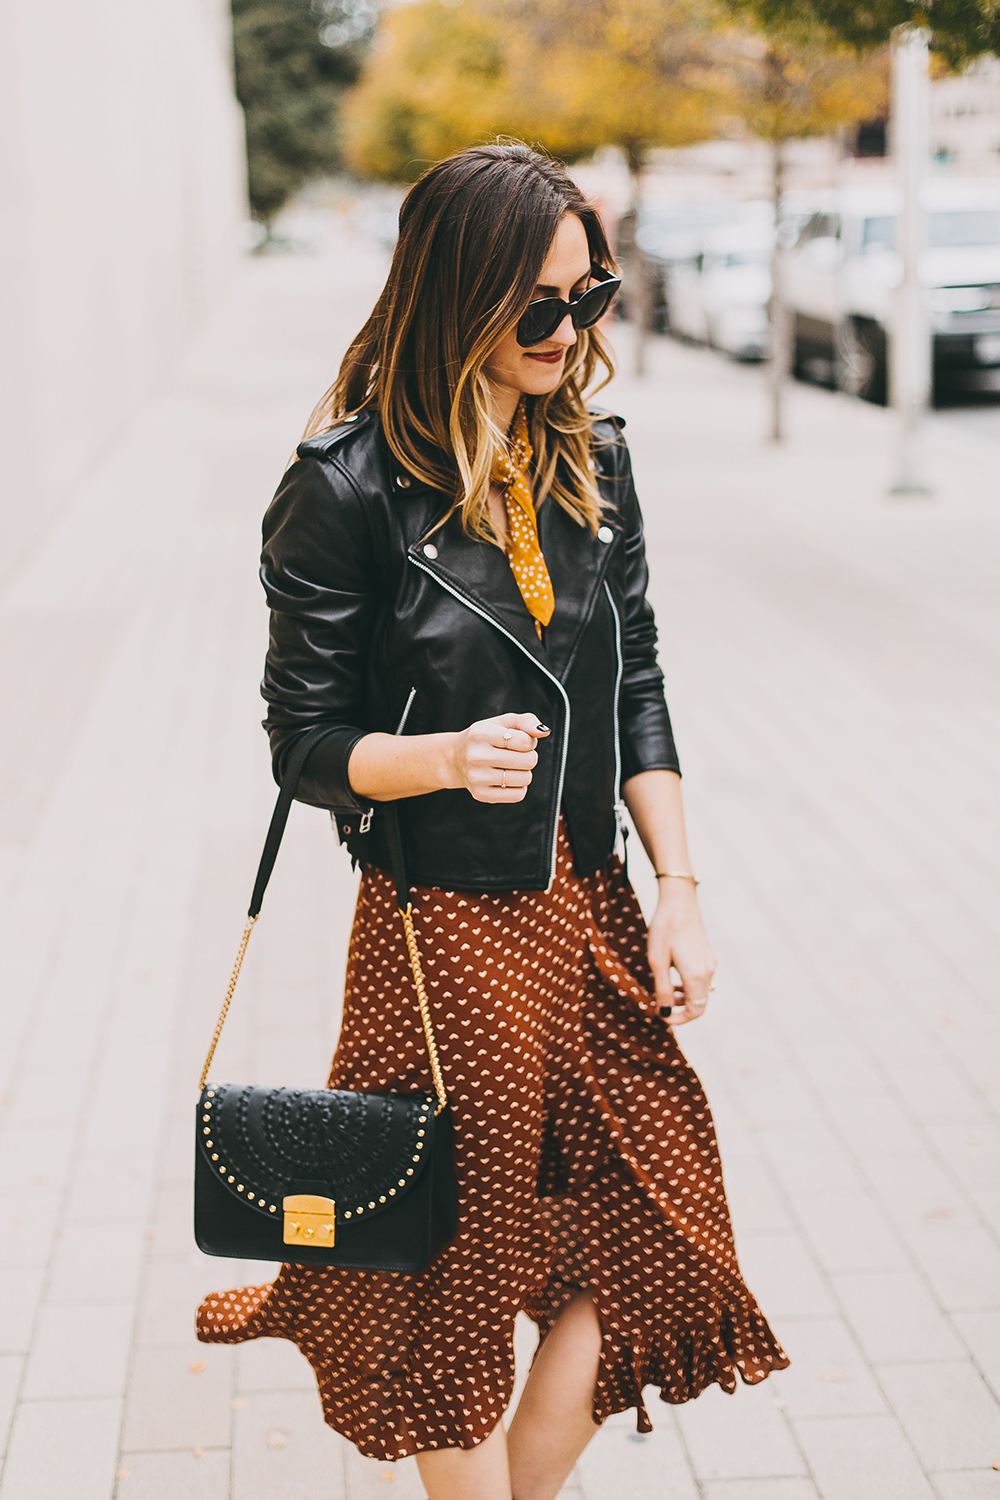 livvyland-blog-olivia-watson-austin-texas-fashion-blogger-urban-outfitters-wrap-dress-sezane-leather-jacket-fall-outfit-idea-11